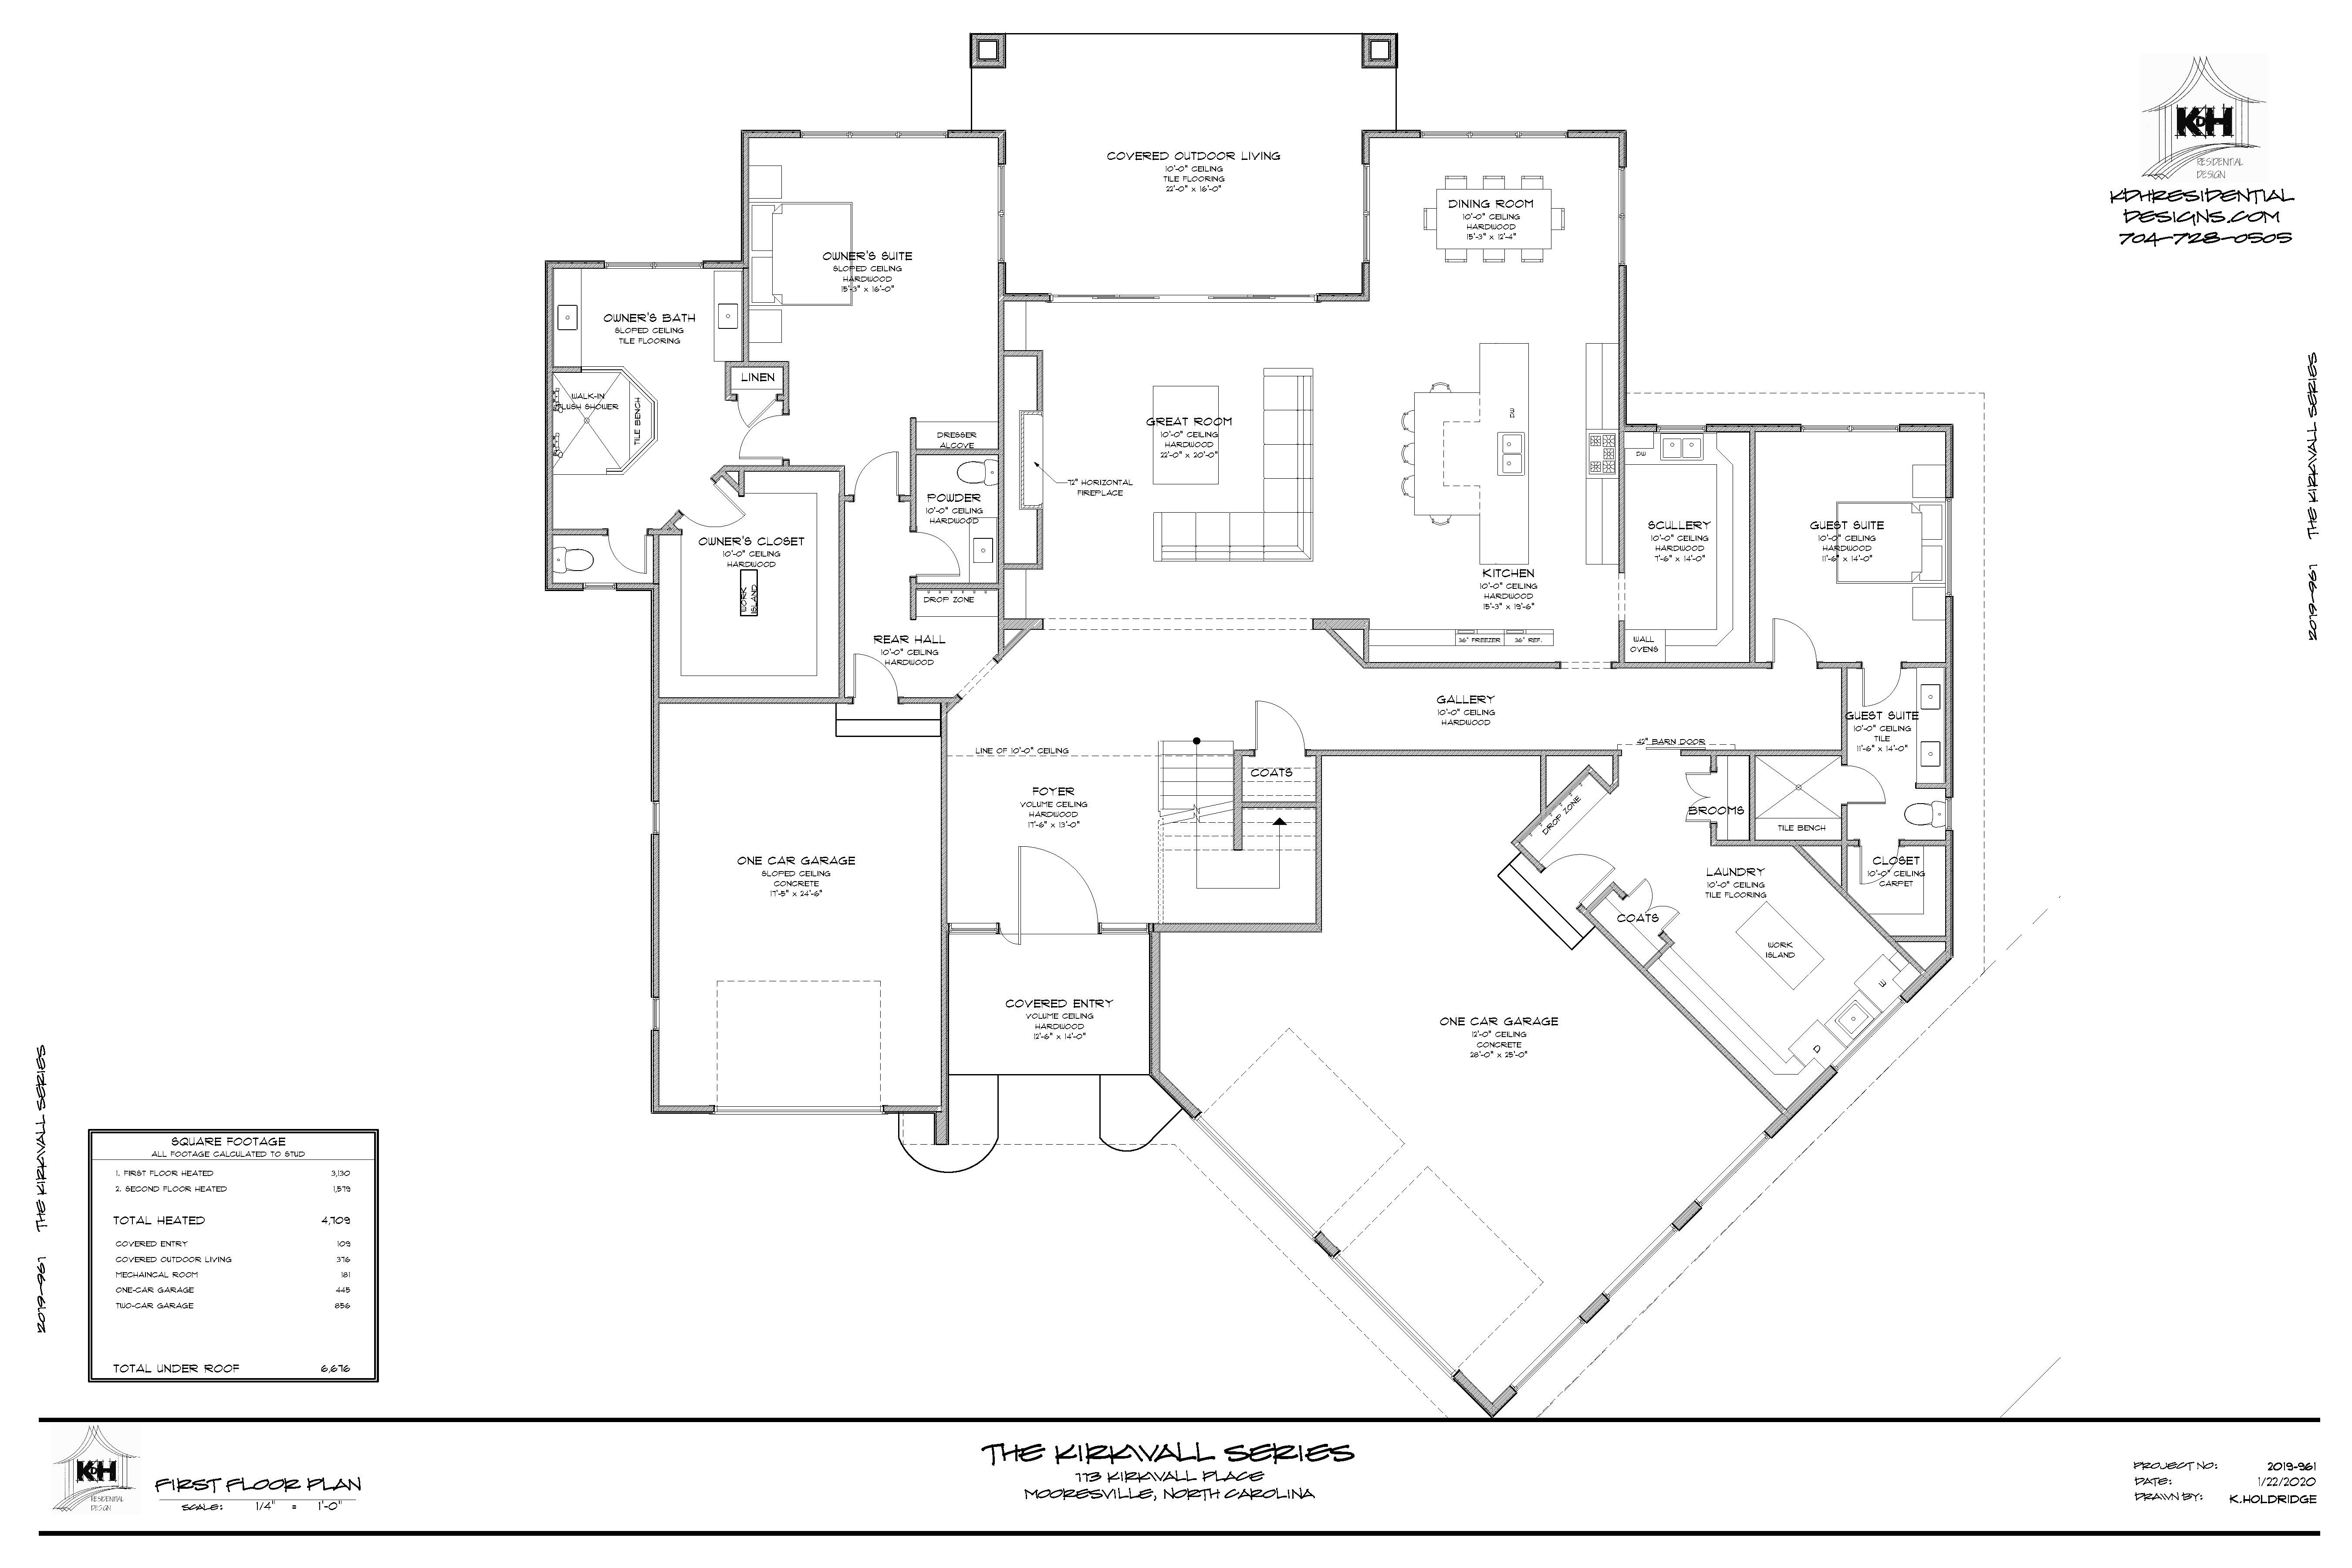 Floor Plan (Main Level) for Proposed Home - 113 Kirkwall Place